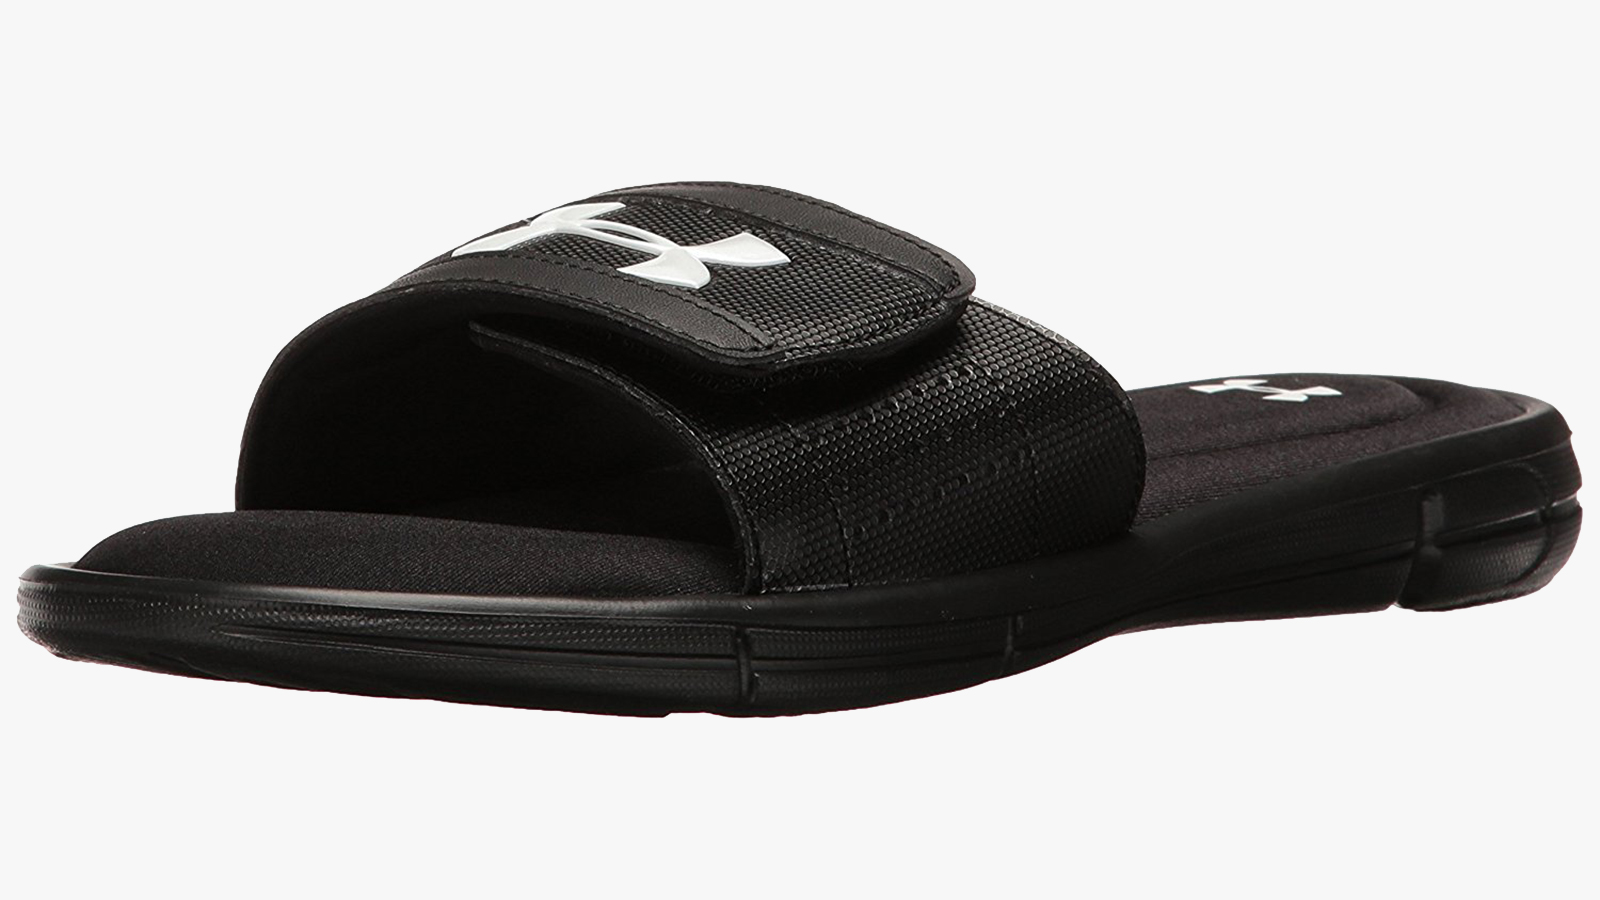 Under Armour Ignite V Best Men's Slides